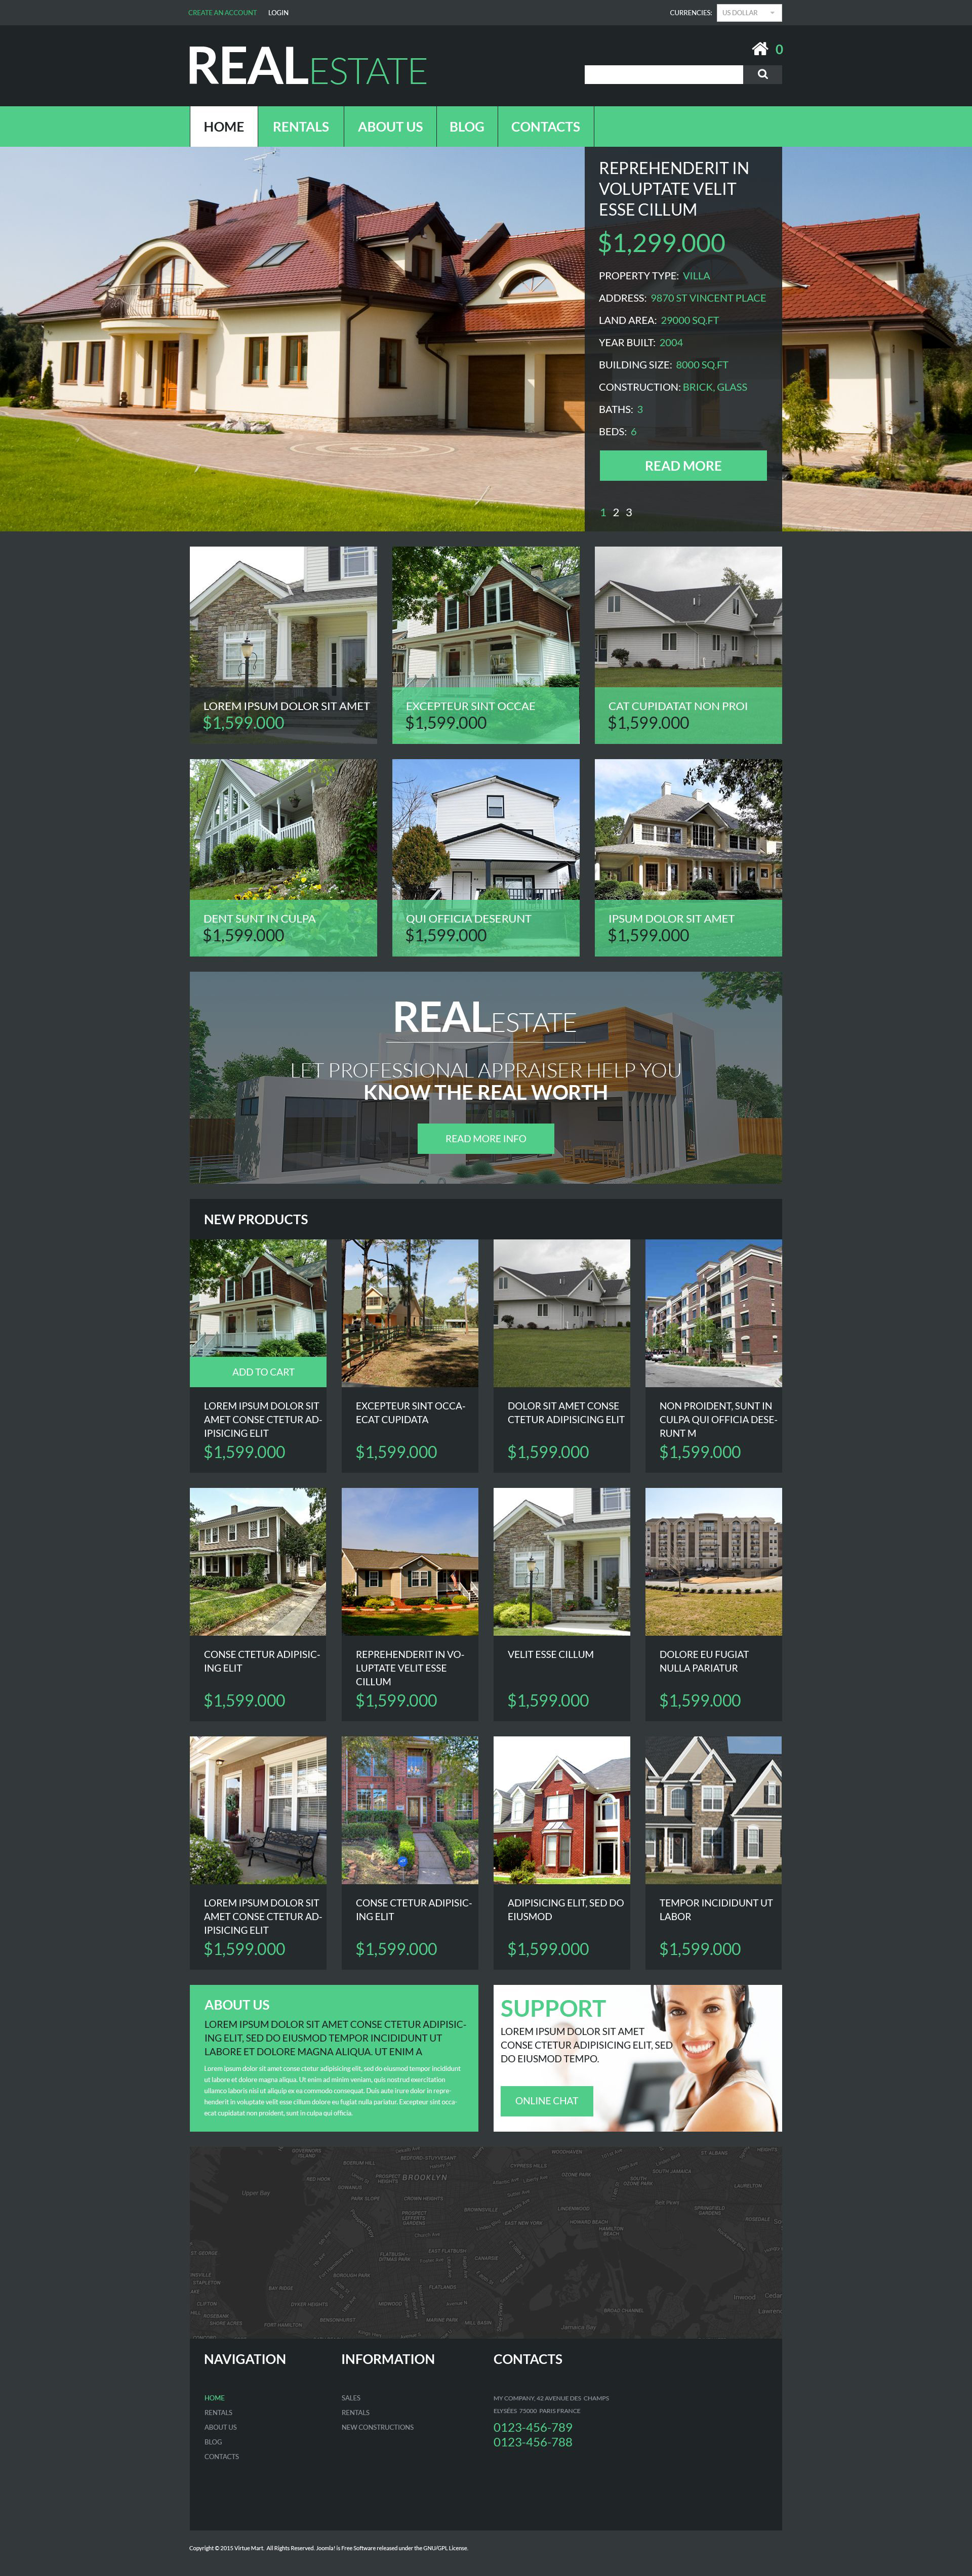 Real Estate Services Template VirtueMart №53353